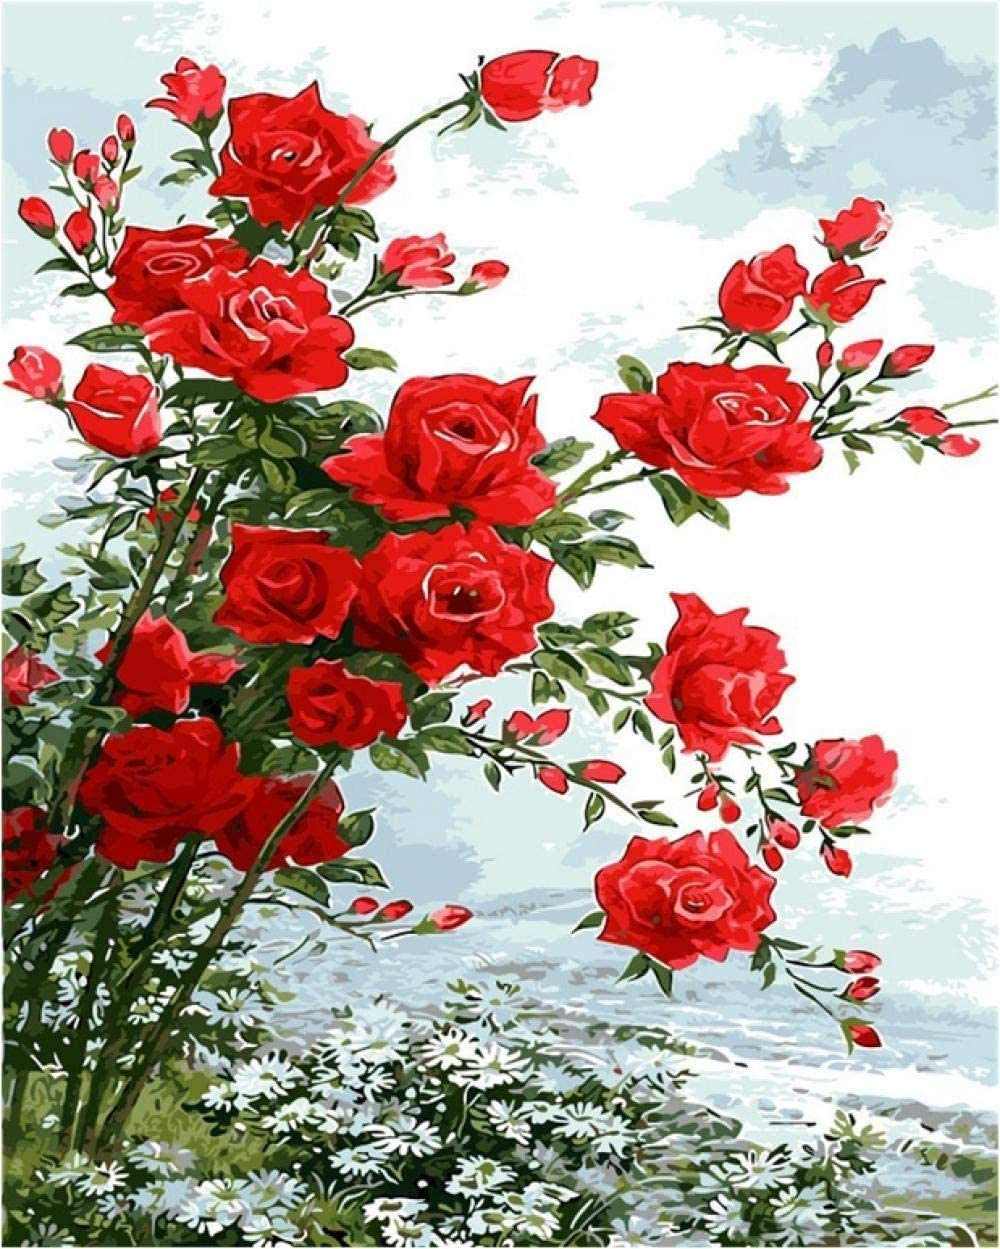 Linen Canvas Paintworks - Digital A Oil Painting for Kits Ranking TOP19 Free shipping New